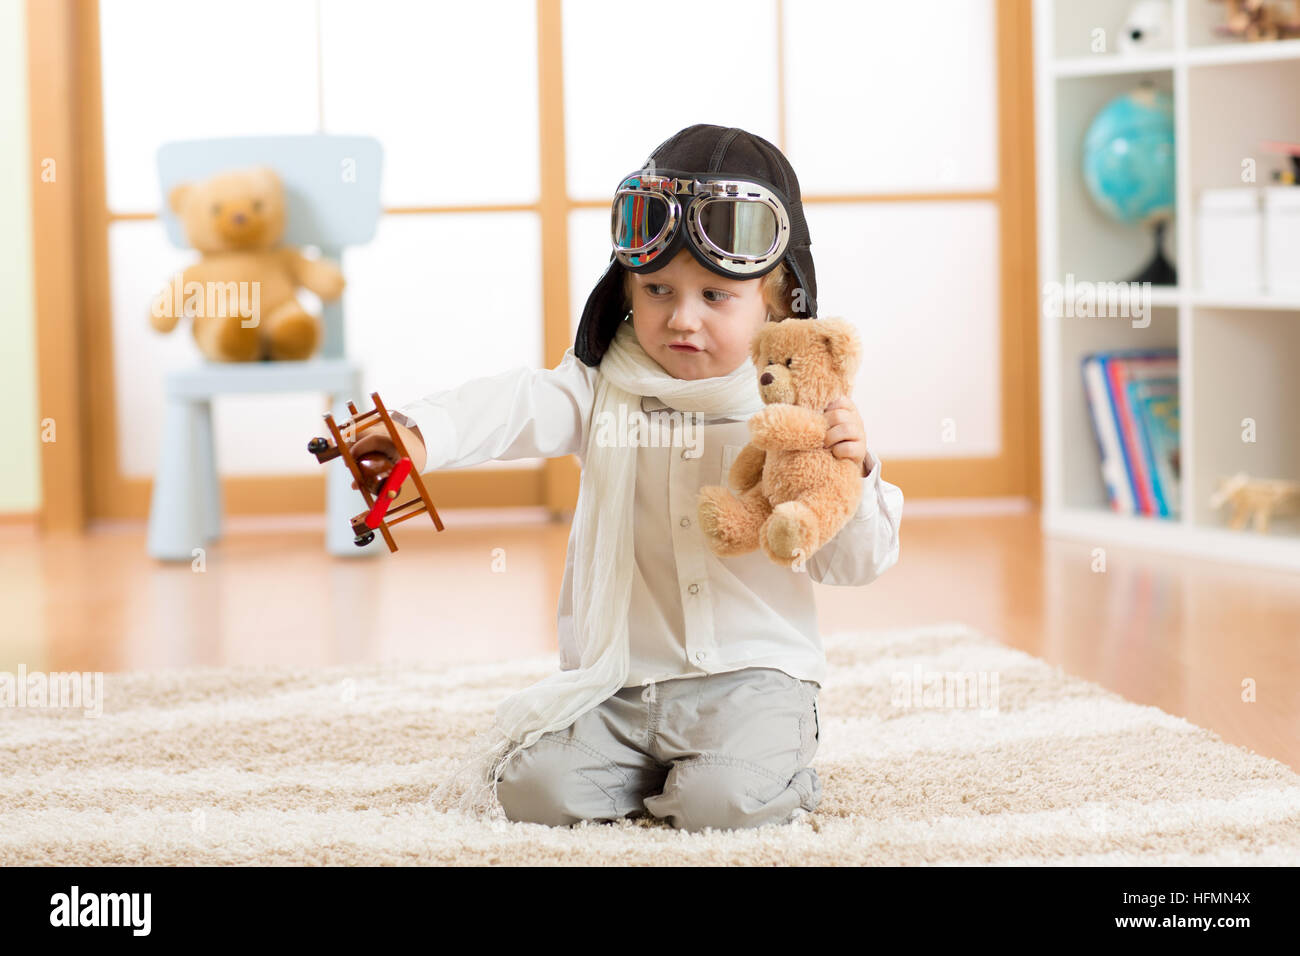 Happy kid boy plays with toy airplane at home in his room - Stock Image